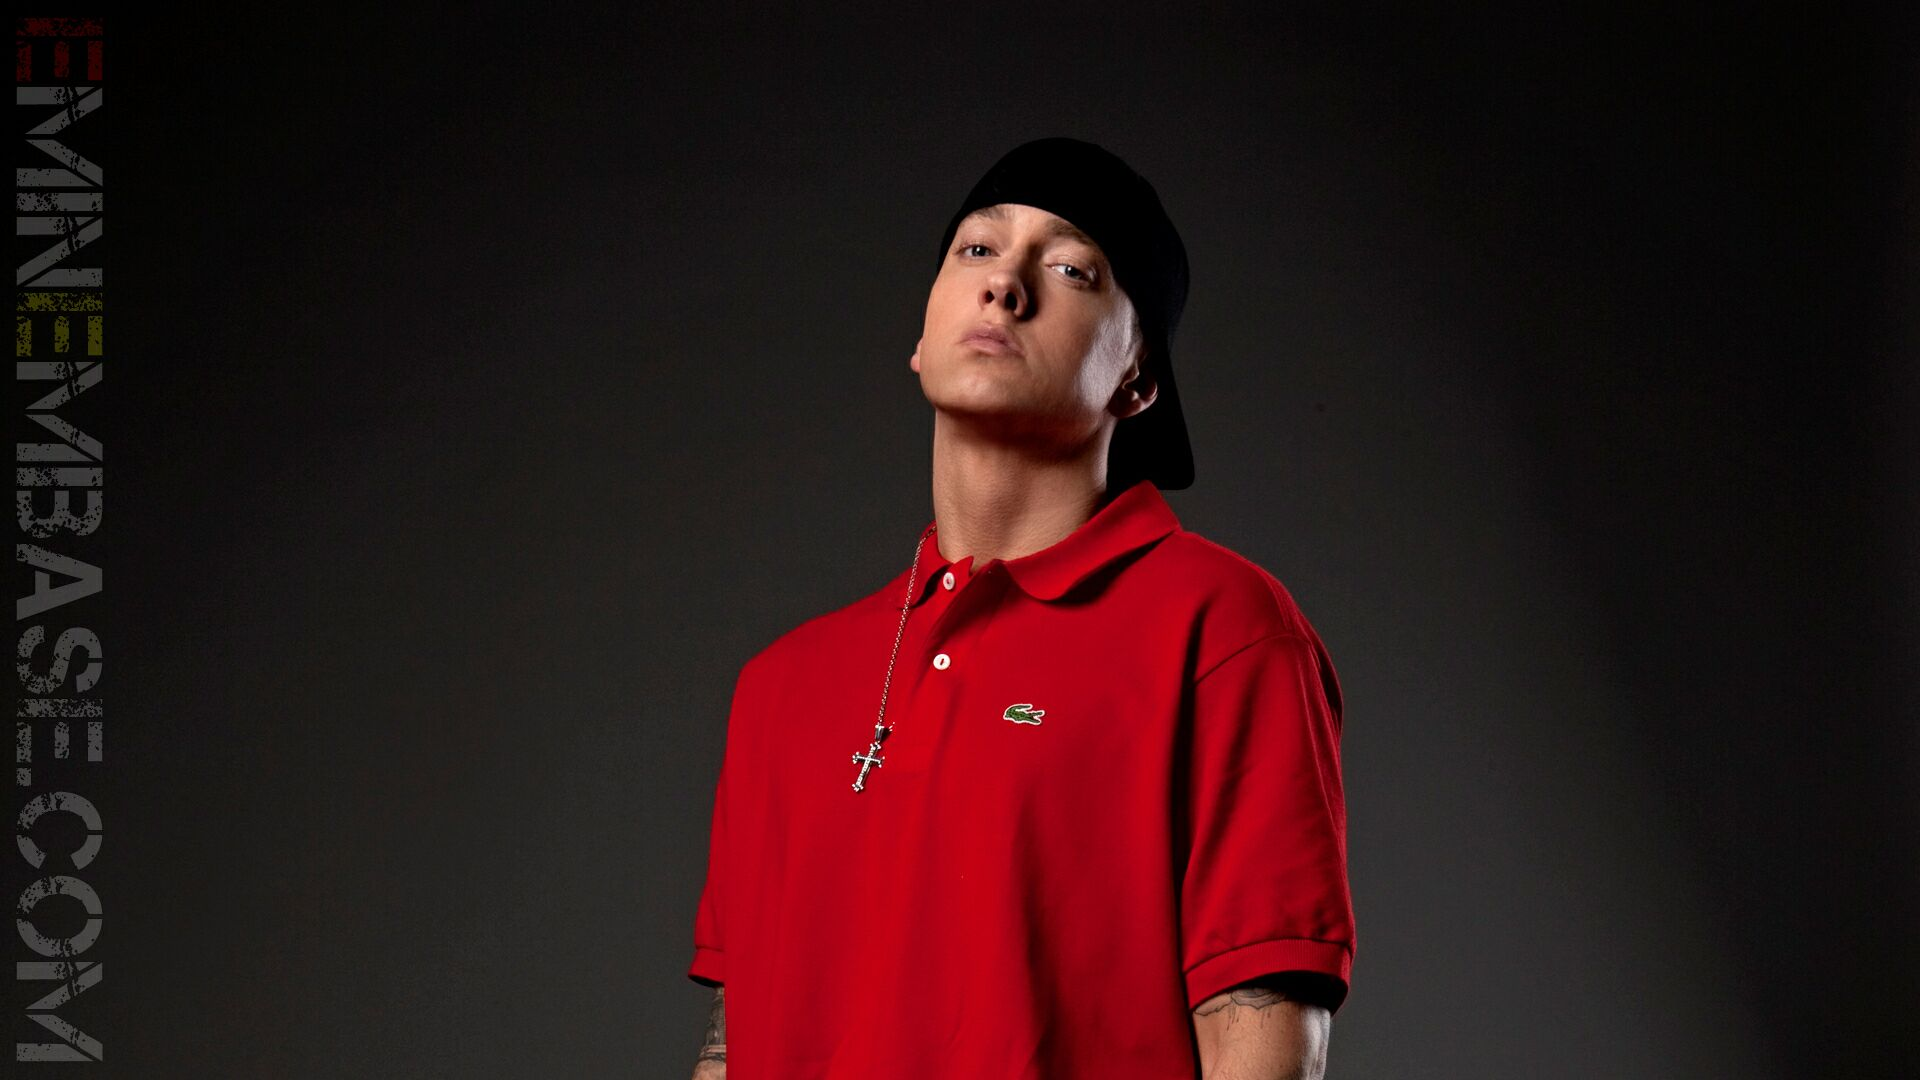 Eminem Wallpapers High Quality Download Free